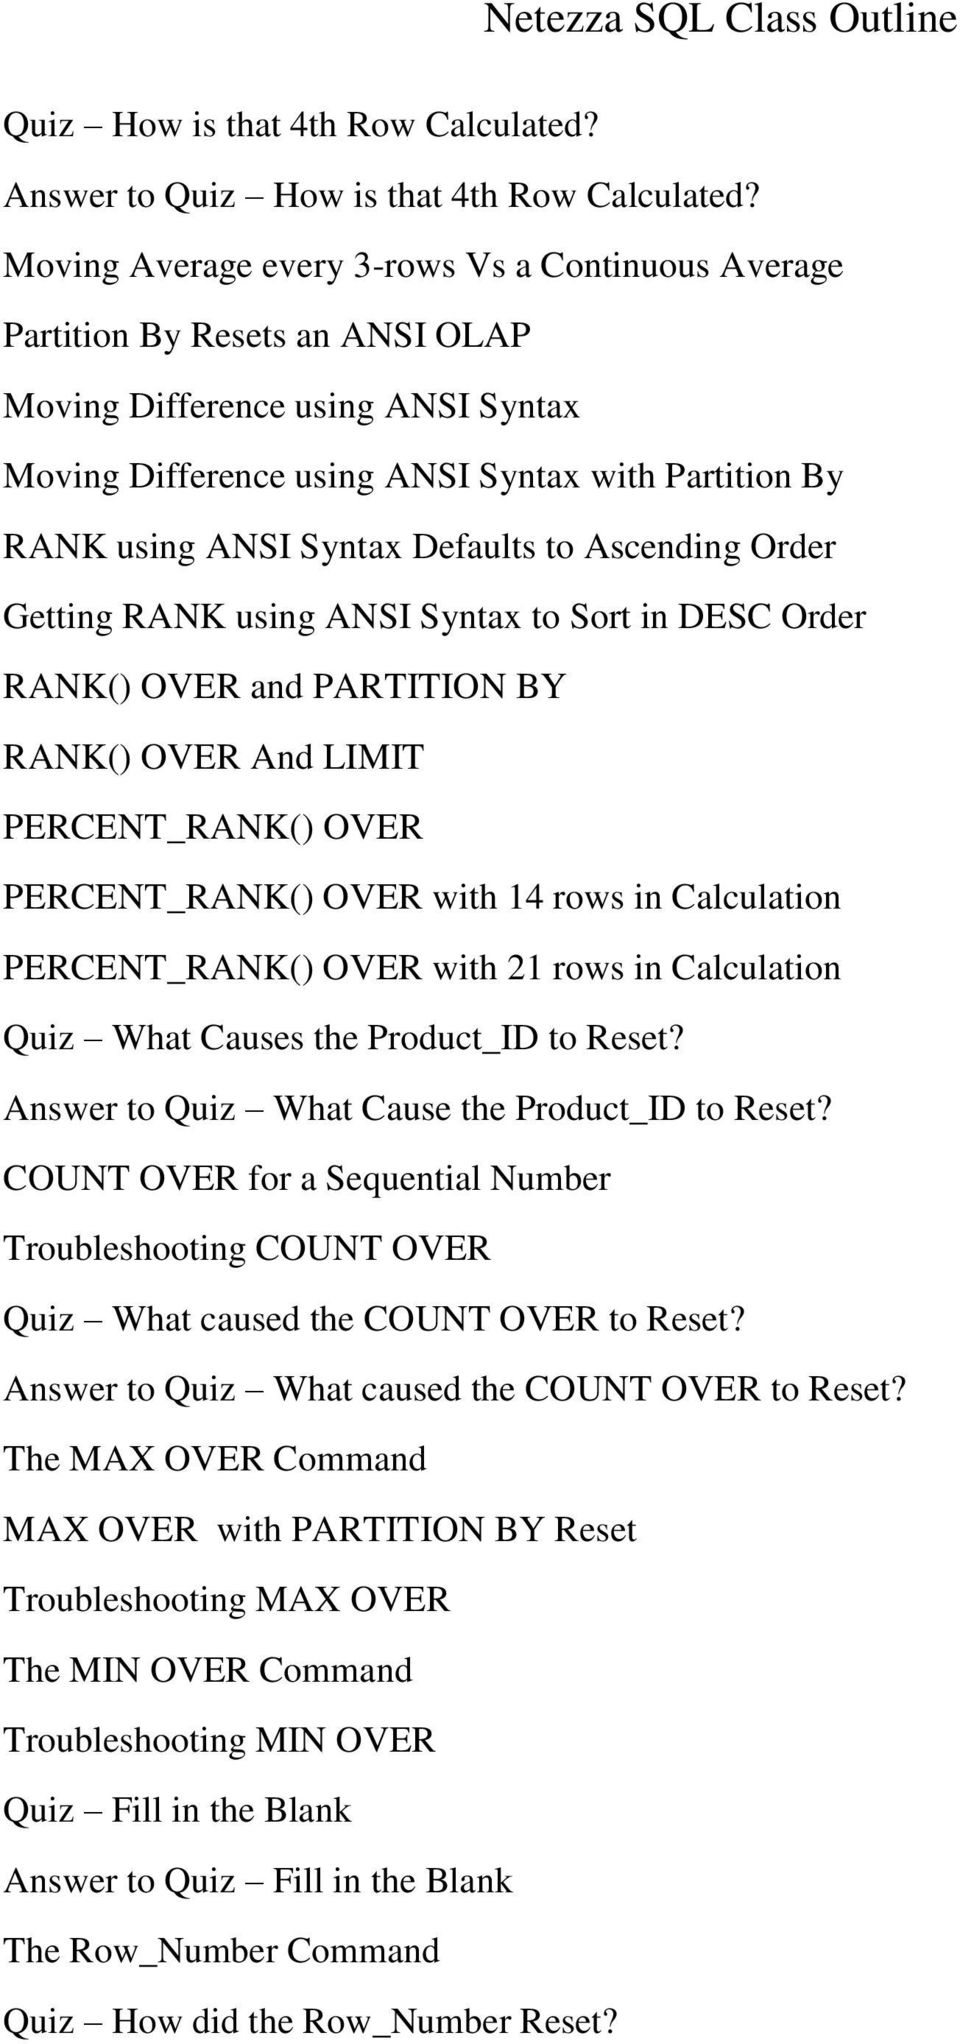 Defaults to Ascending Order Getting RANK using ANSI Syntax to Sort in DESC Order RANK() OVER and PARTITION BY RANK() OVER And LIMIT PERCENT_RANK() OVER PERCENT_RANK() OVER with 14 rows in Calculation